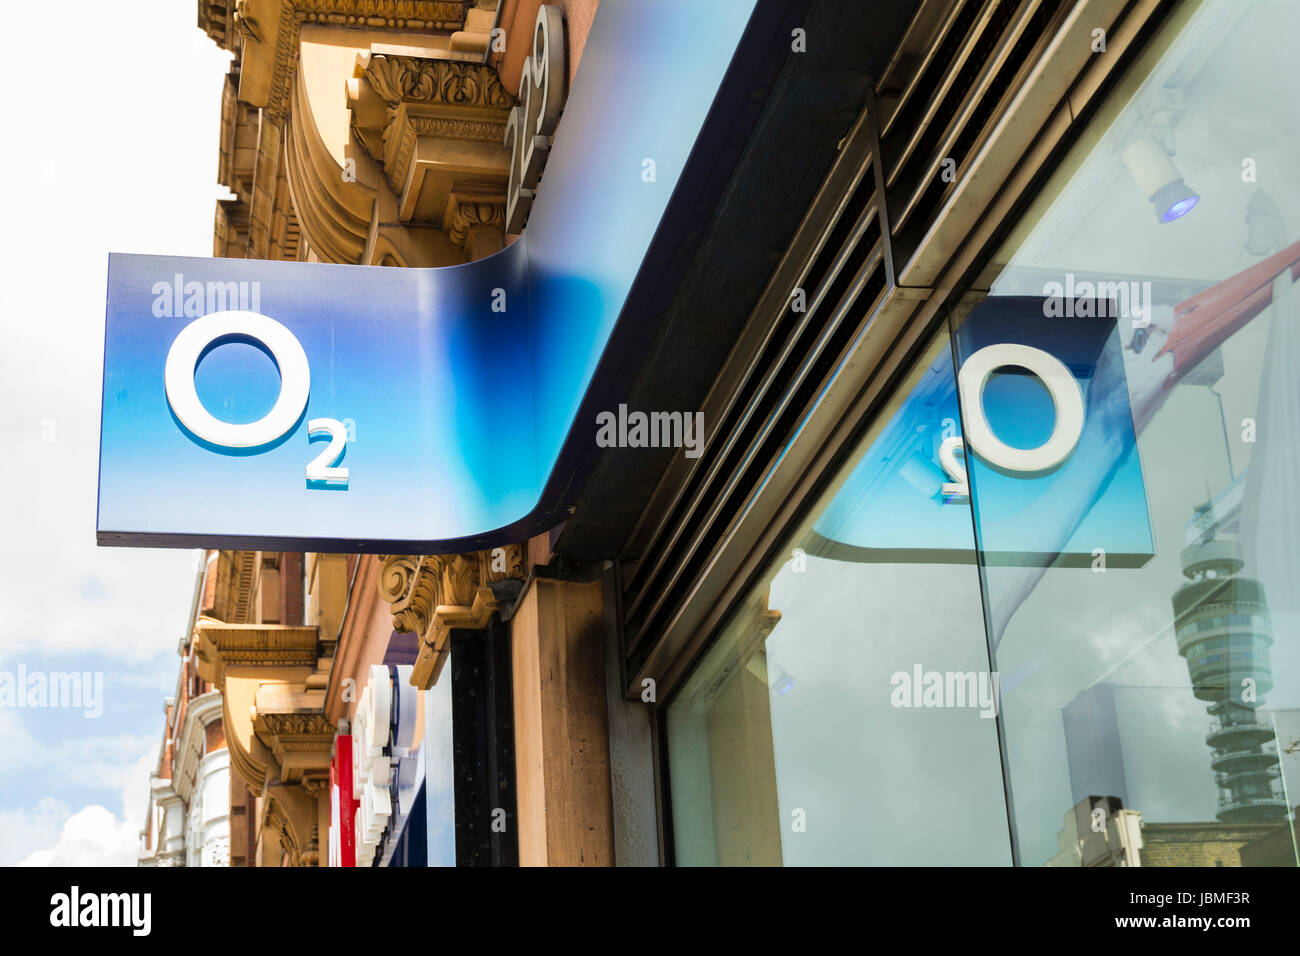 An O2 shop in London, England, UK - Stock Image